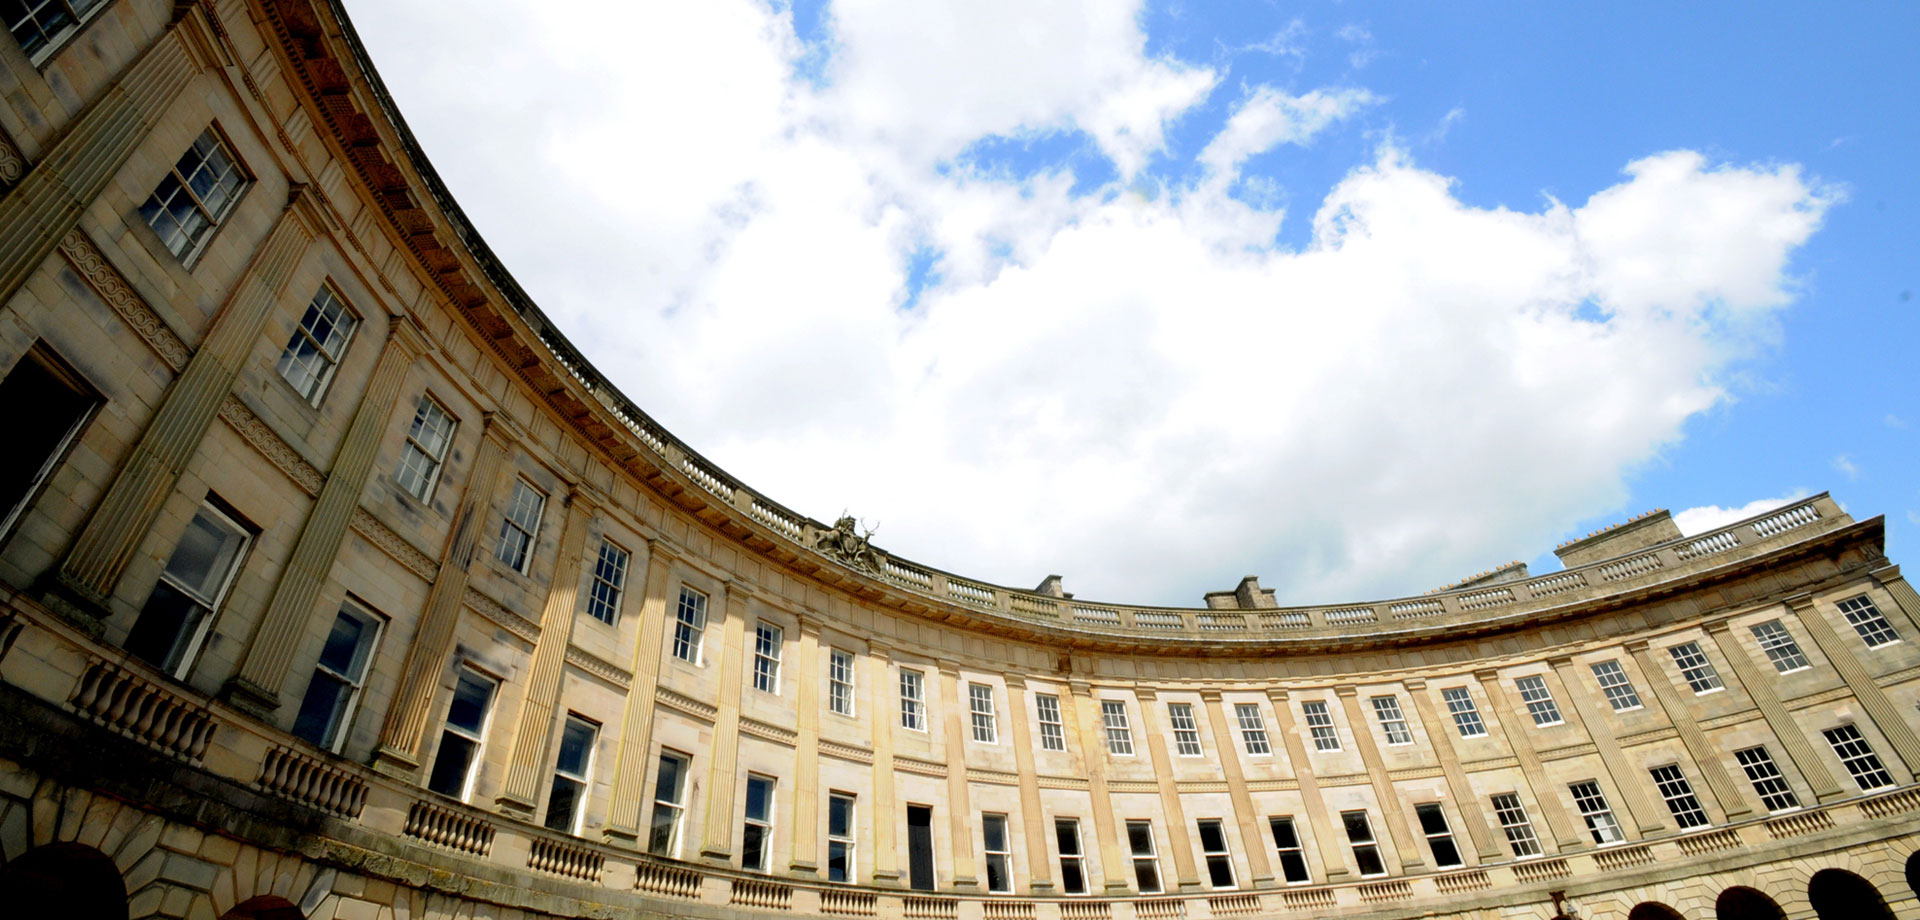 50m Buxton Crescent Project To Be Launched In 2020 Under New